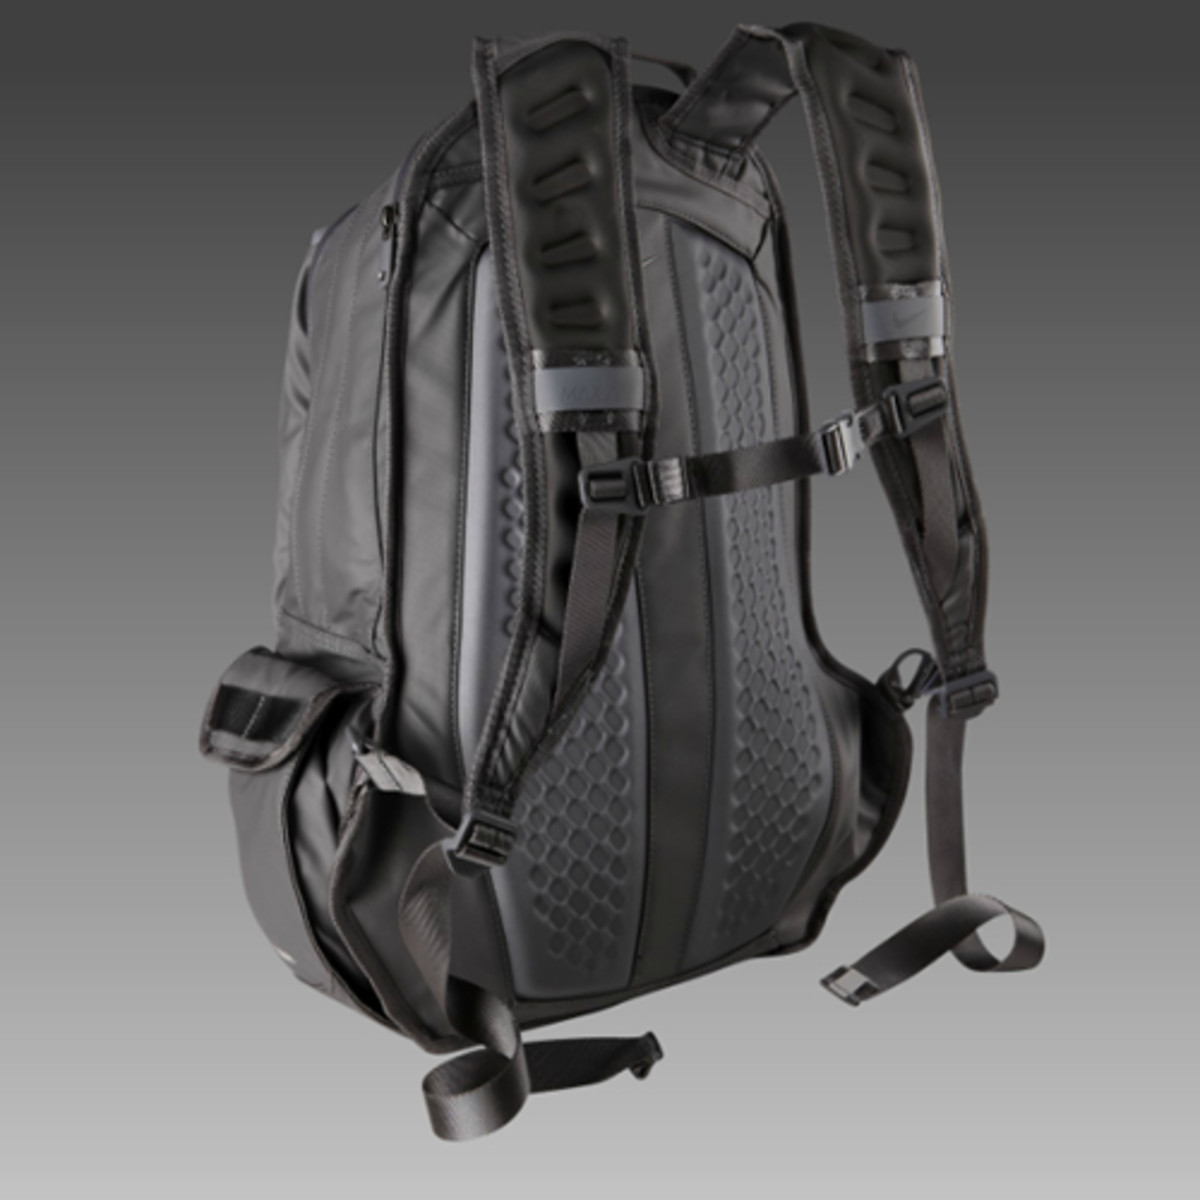 nike ultimatum backpack